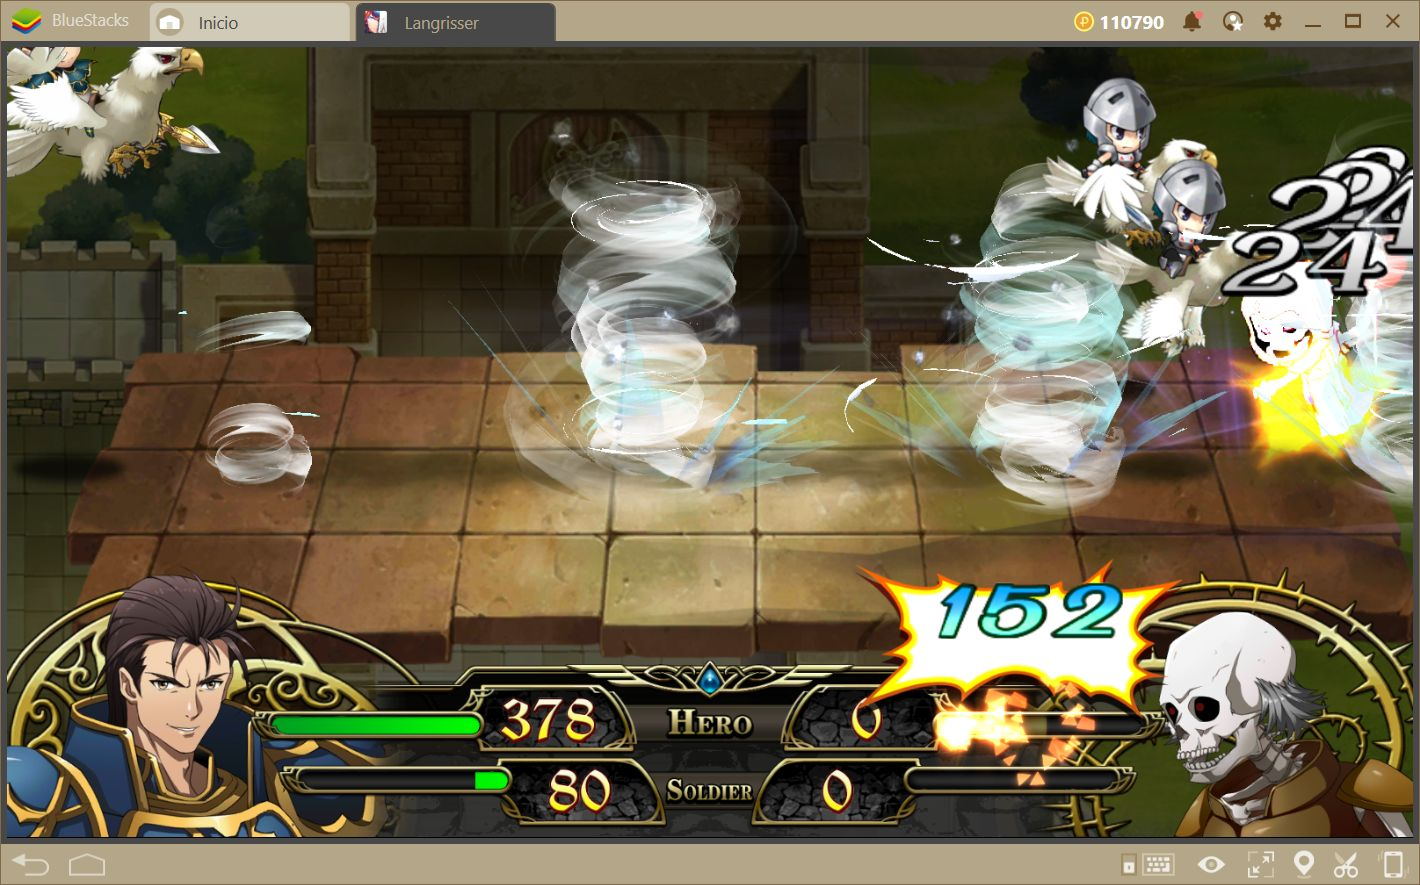 Combat Fundamentals of Langrisser: Learn all about the